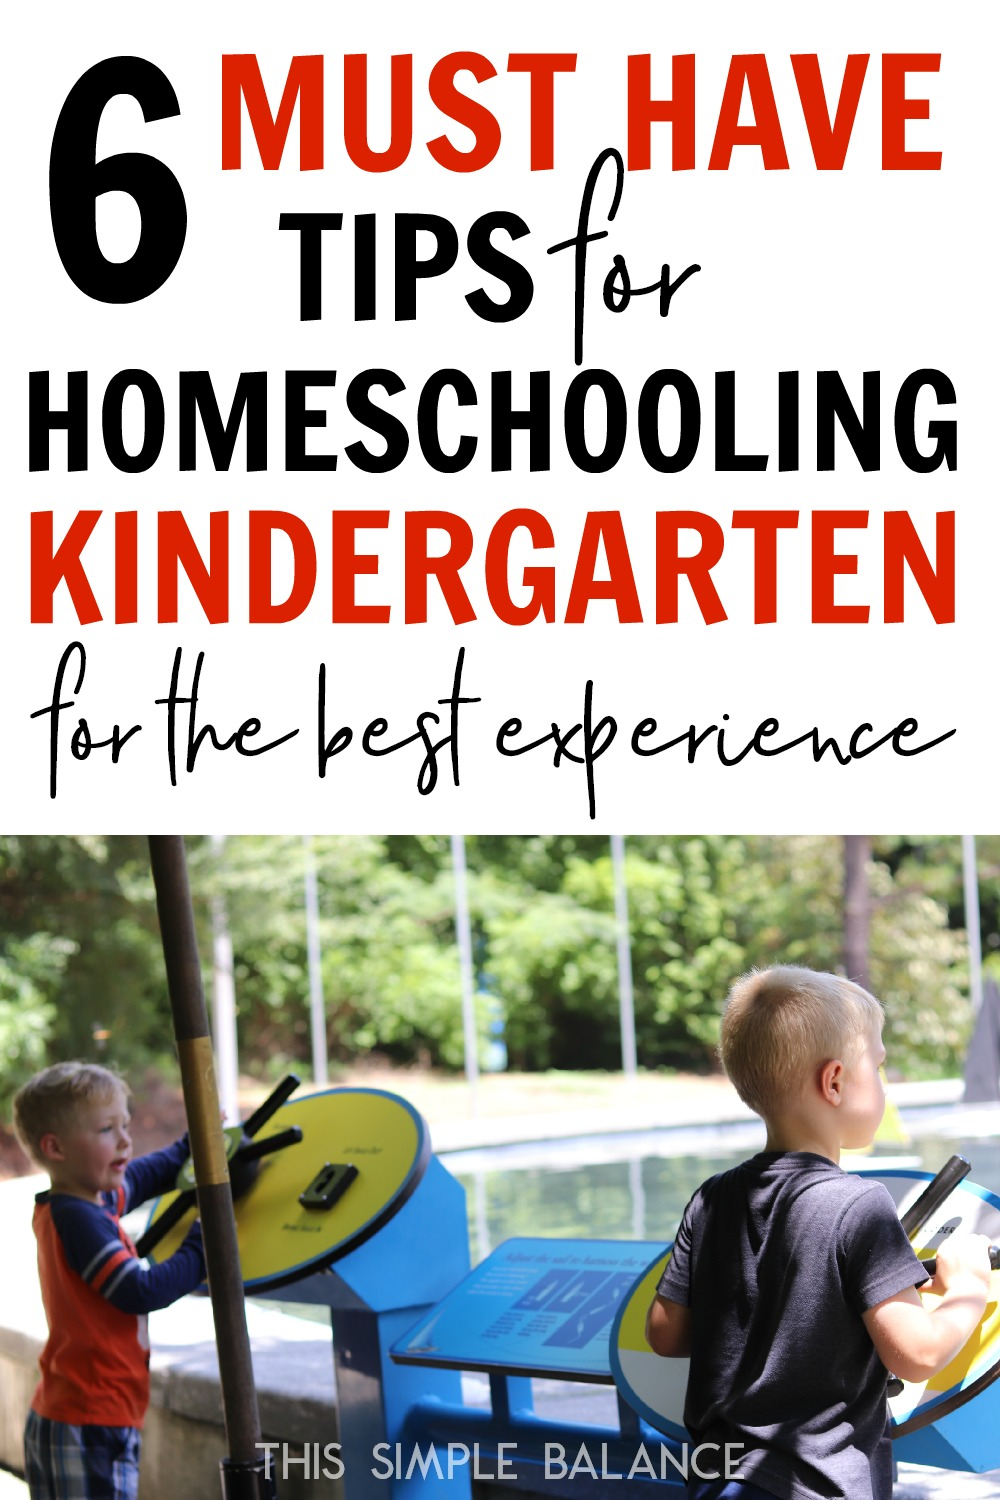 Homeschooling kindergarten should be one of your best homeschool years: use these tips to make sure you (and your child) have the best possible experience!